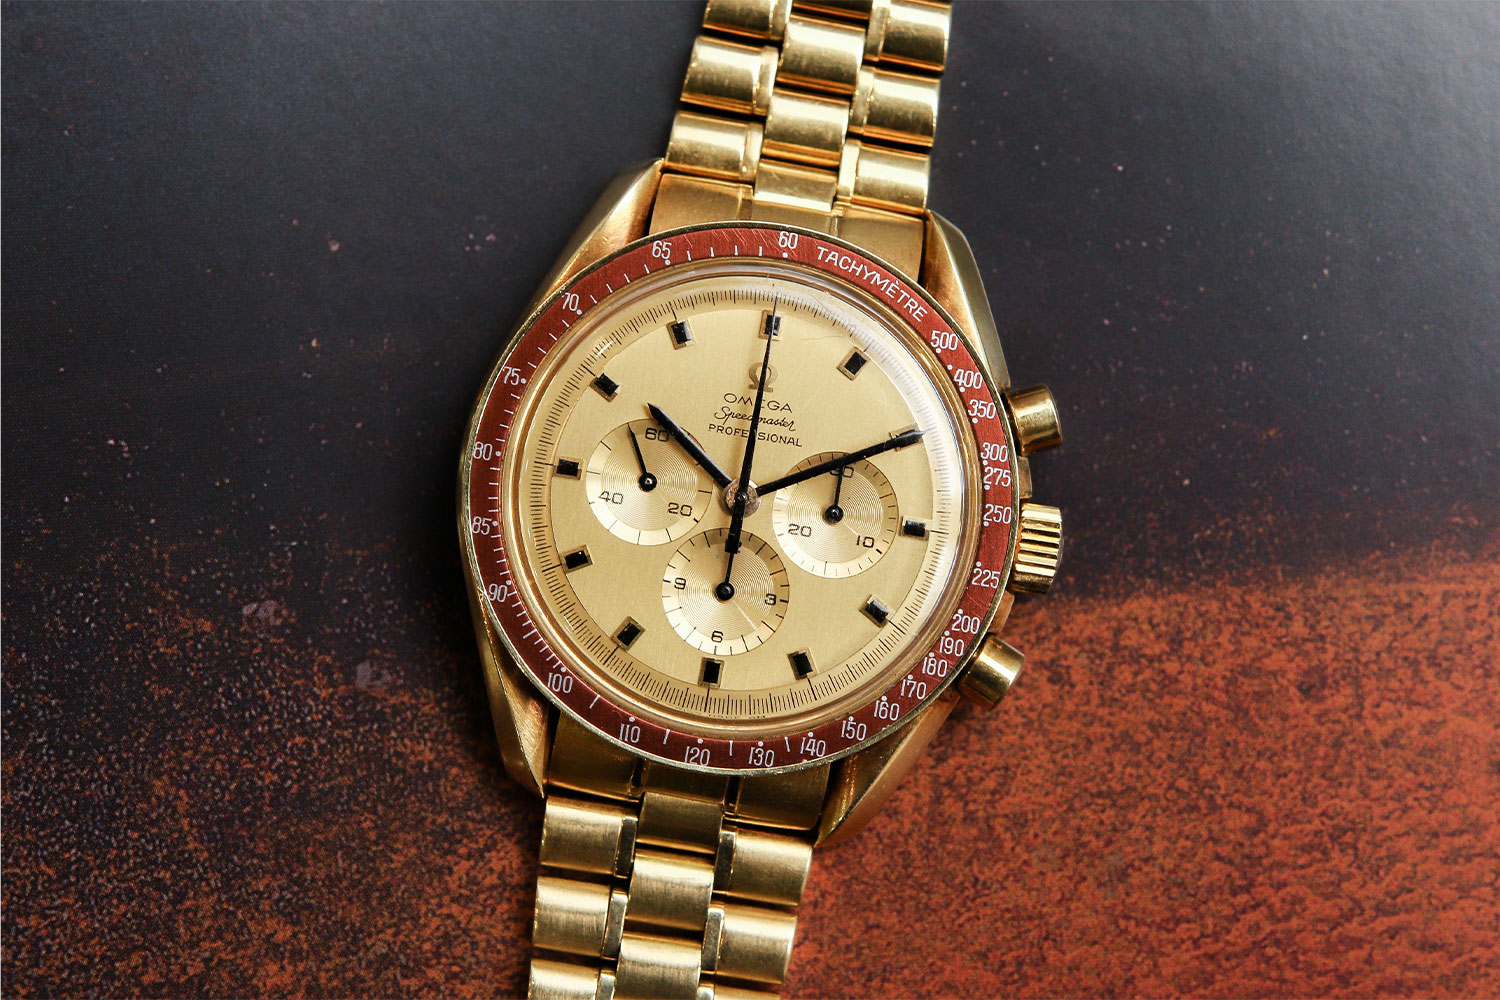 Lot 818 – 1969 Omega Speedmaster Apollo XI ref. 145.022B